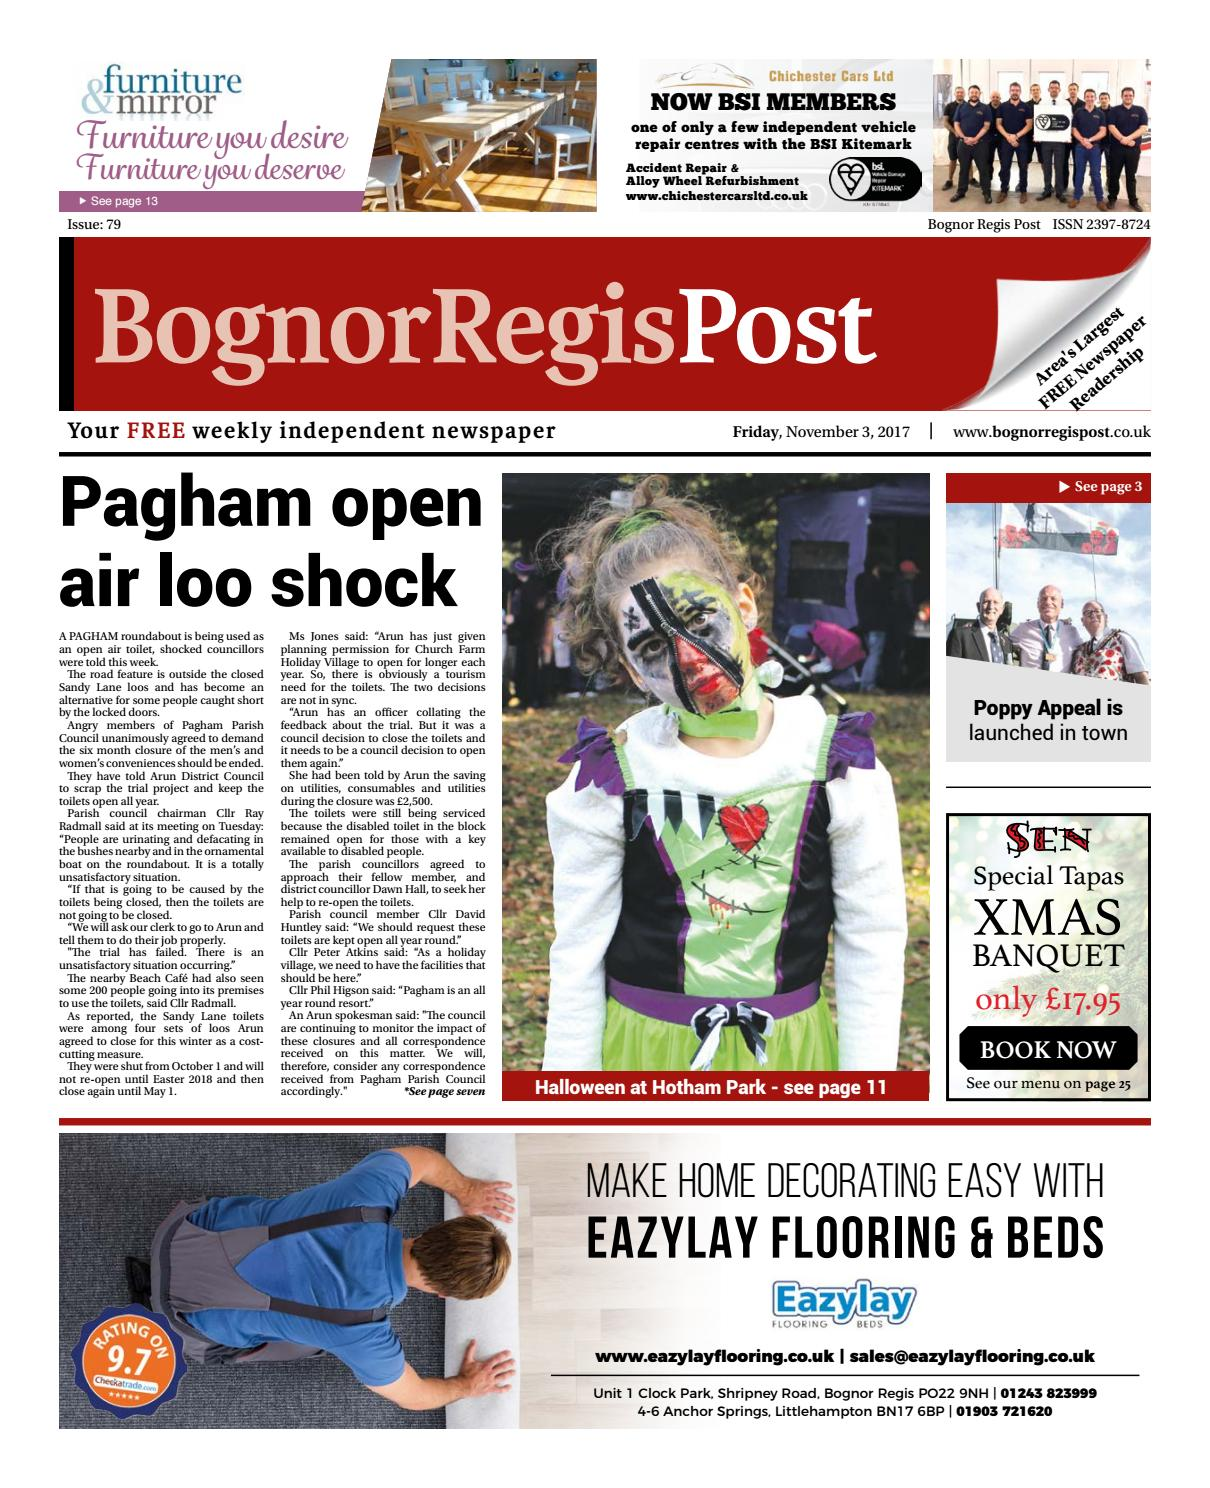 Bognor Regis Post Issue 79 by Post Newspapers - issuu